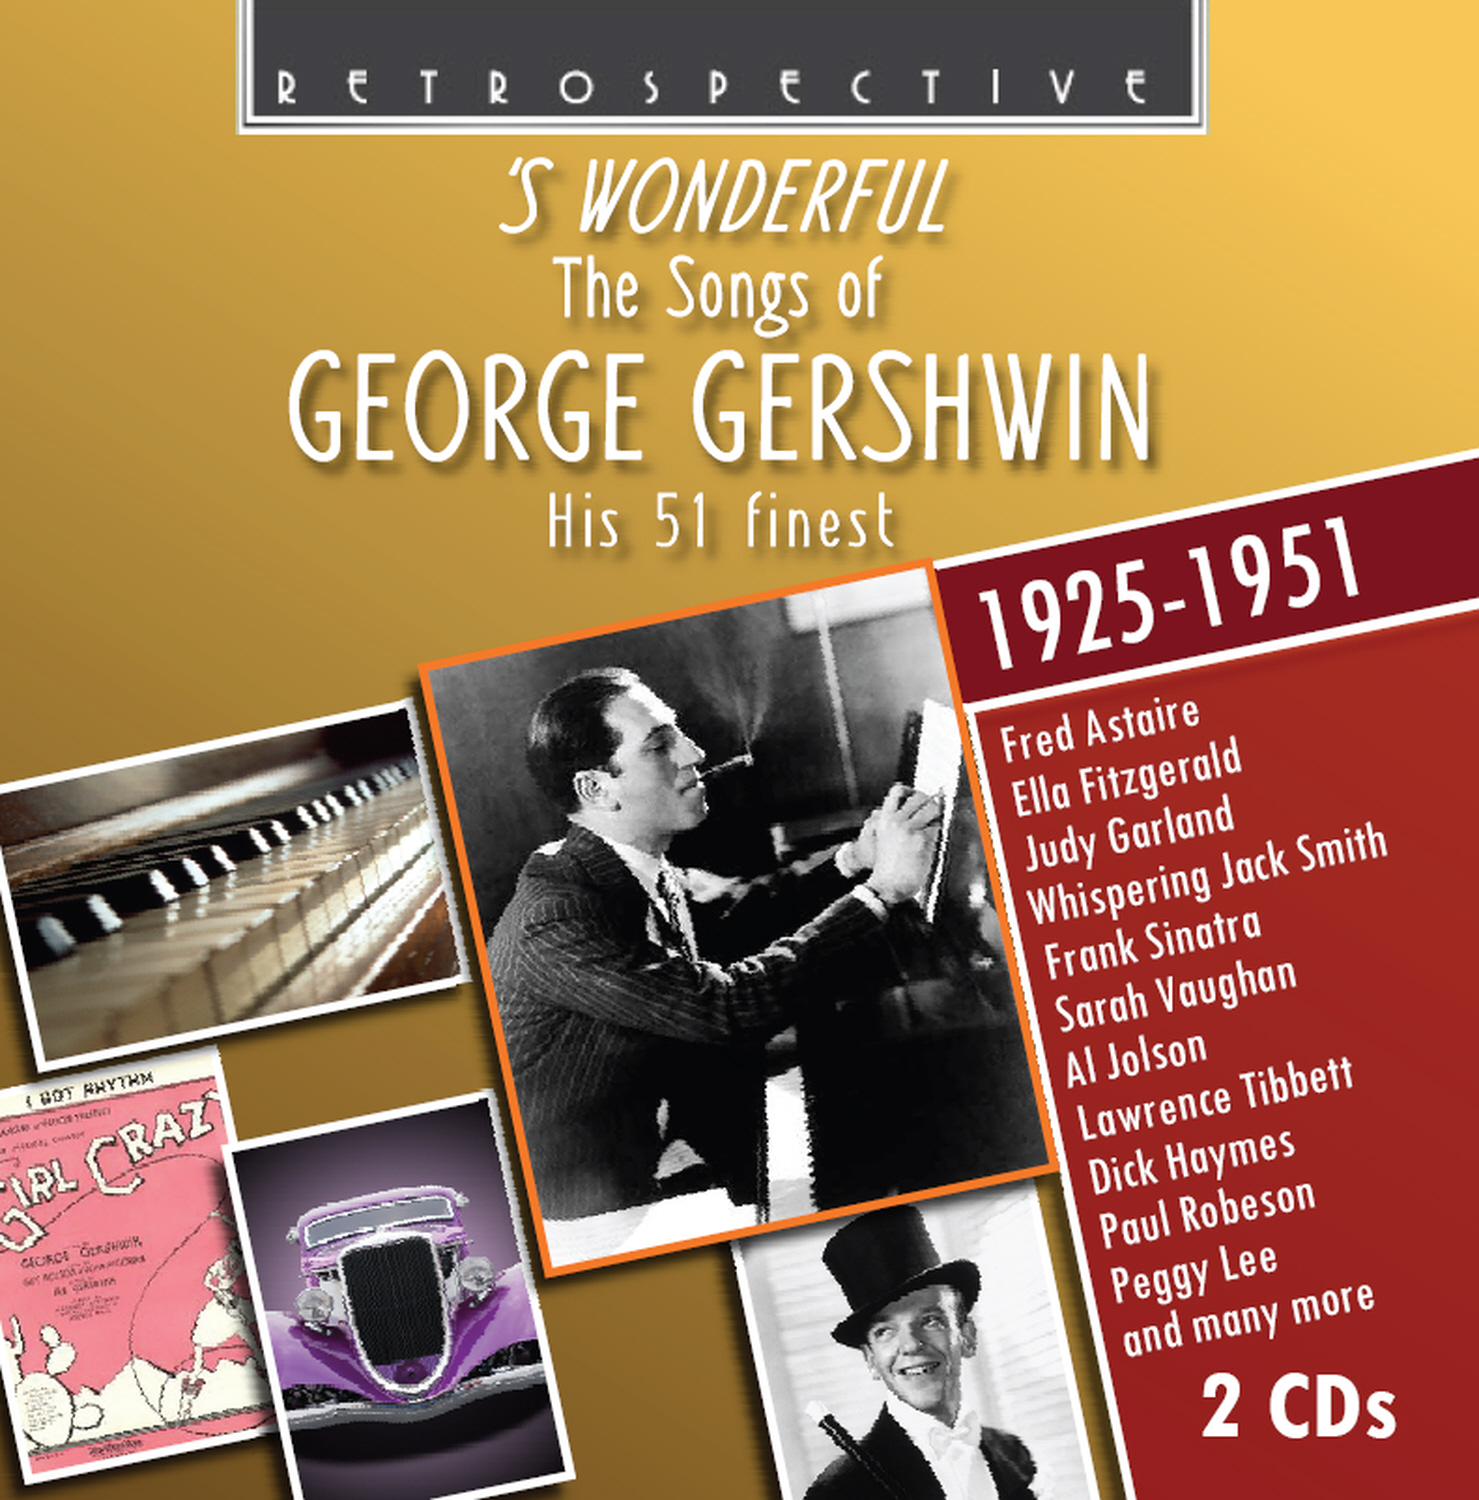 'S Wonderful: The Songs of George Gershwin, His 51 Finest (1925-1951)